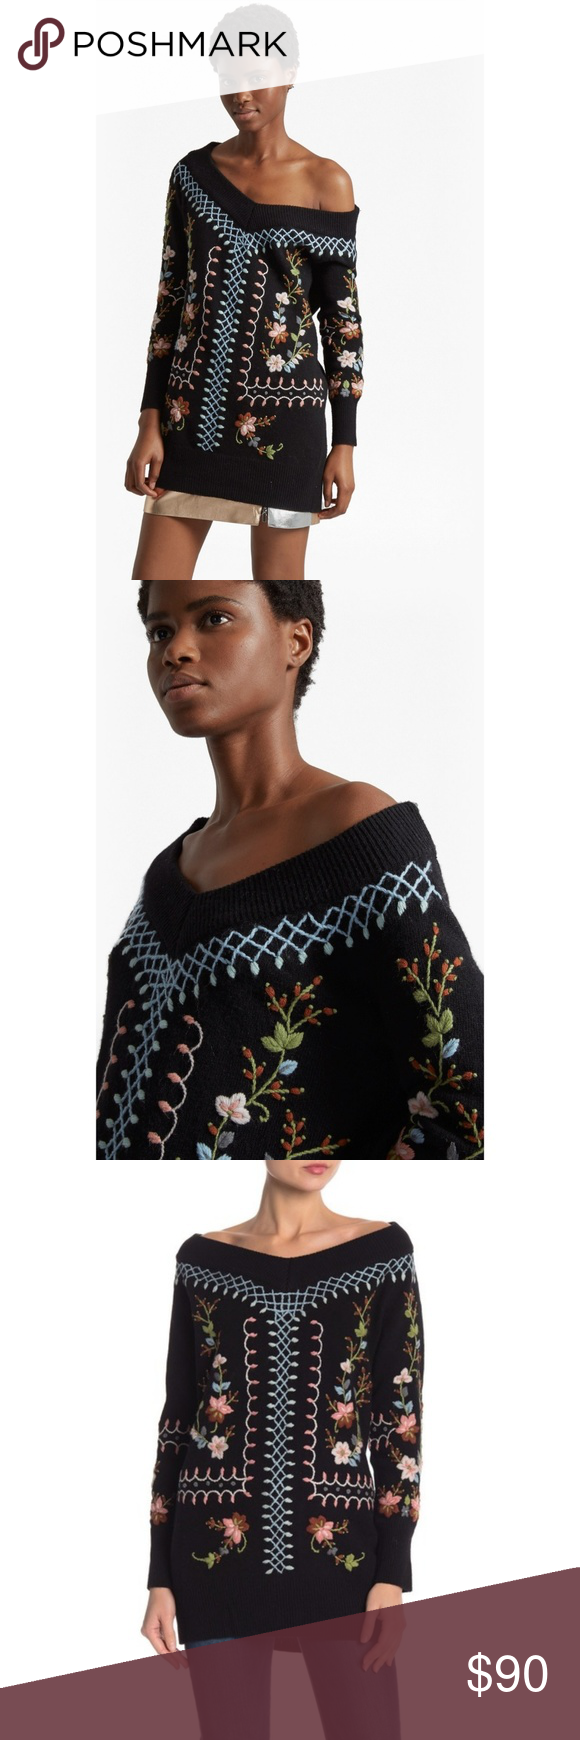 87986d646f1 French connection Bijou Embroidered pullover Brand new with tags. An  off-the-shoulder embroidered knit pullover is the next addition to our  closet.